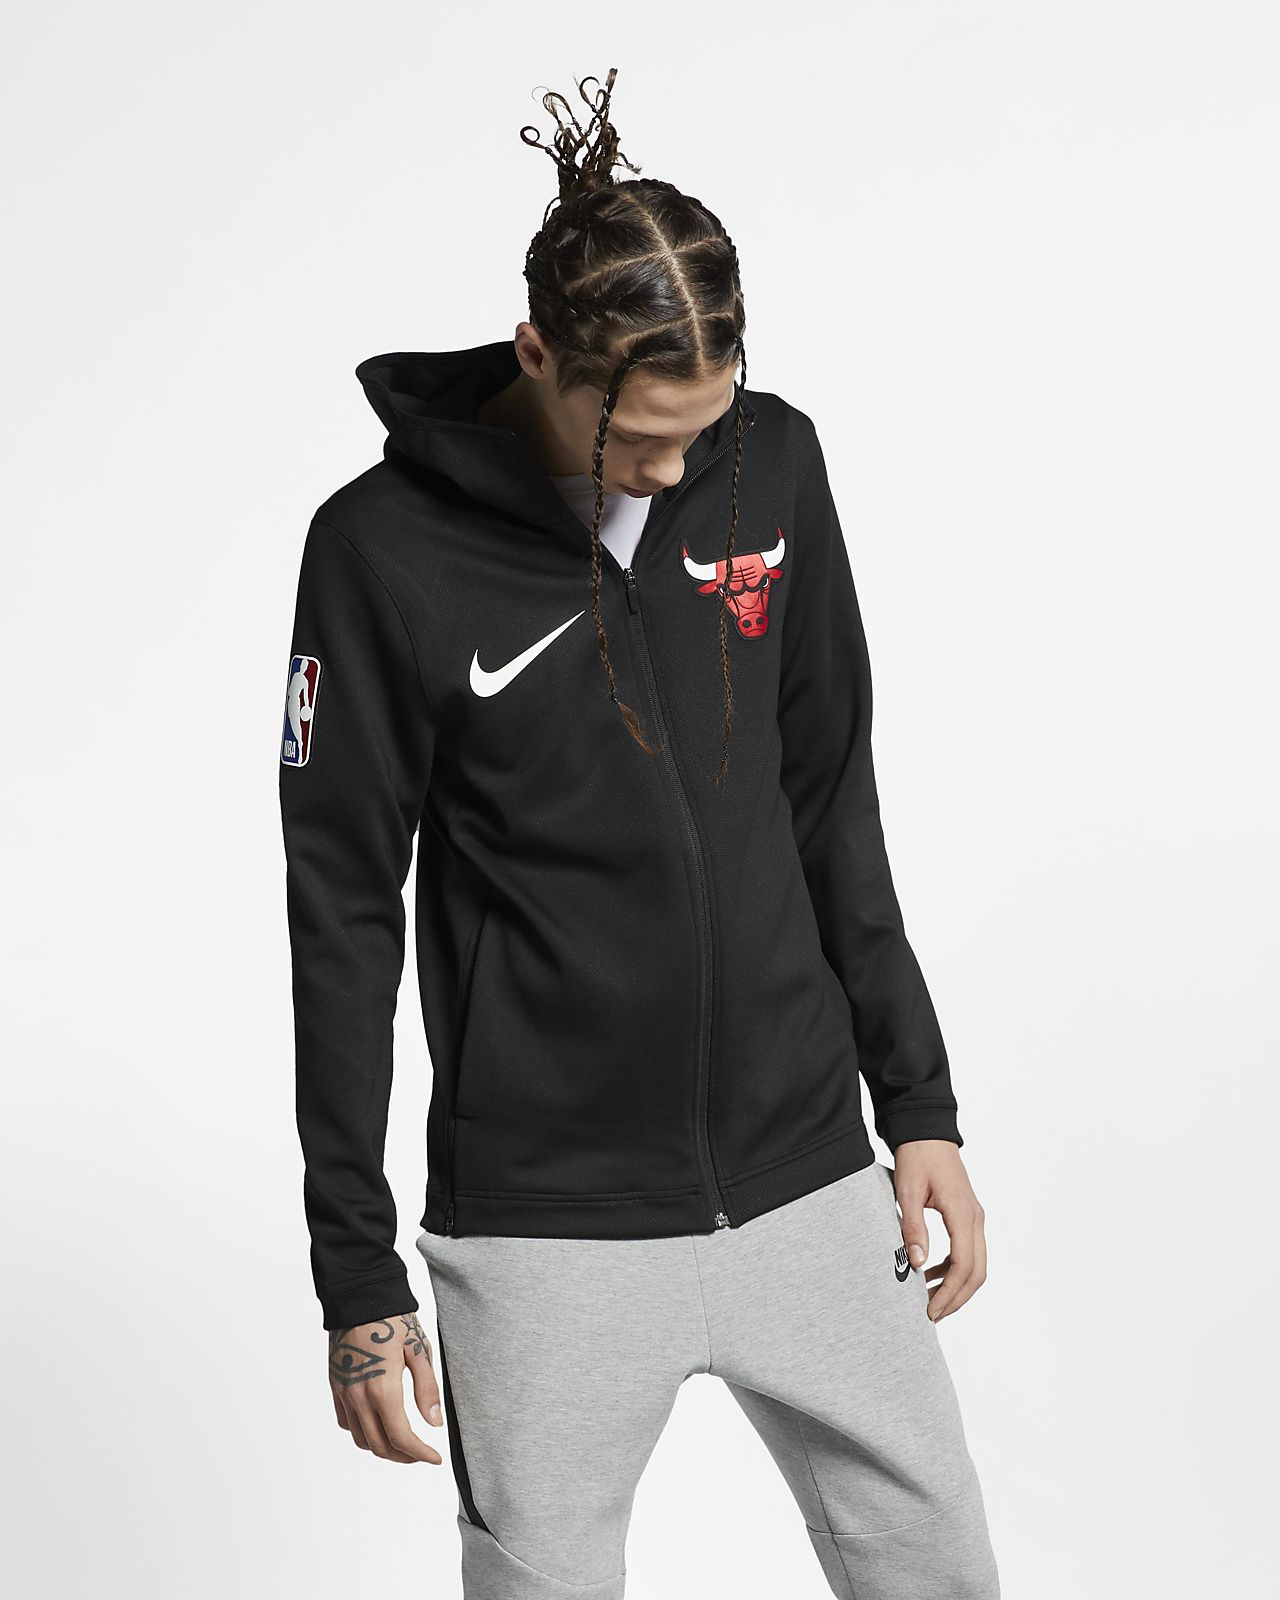 Chicago Bulls Nike Therma Flex Showtime Men's NBA Hoodie